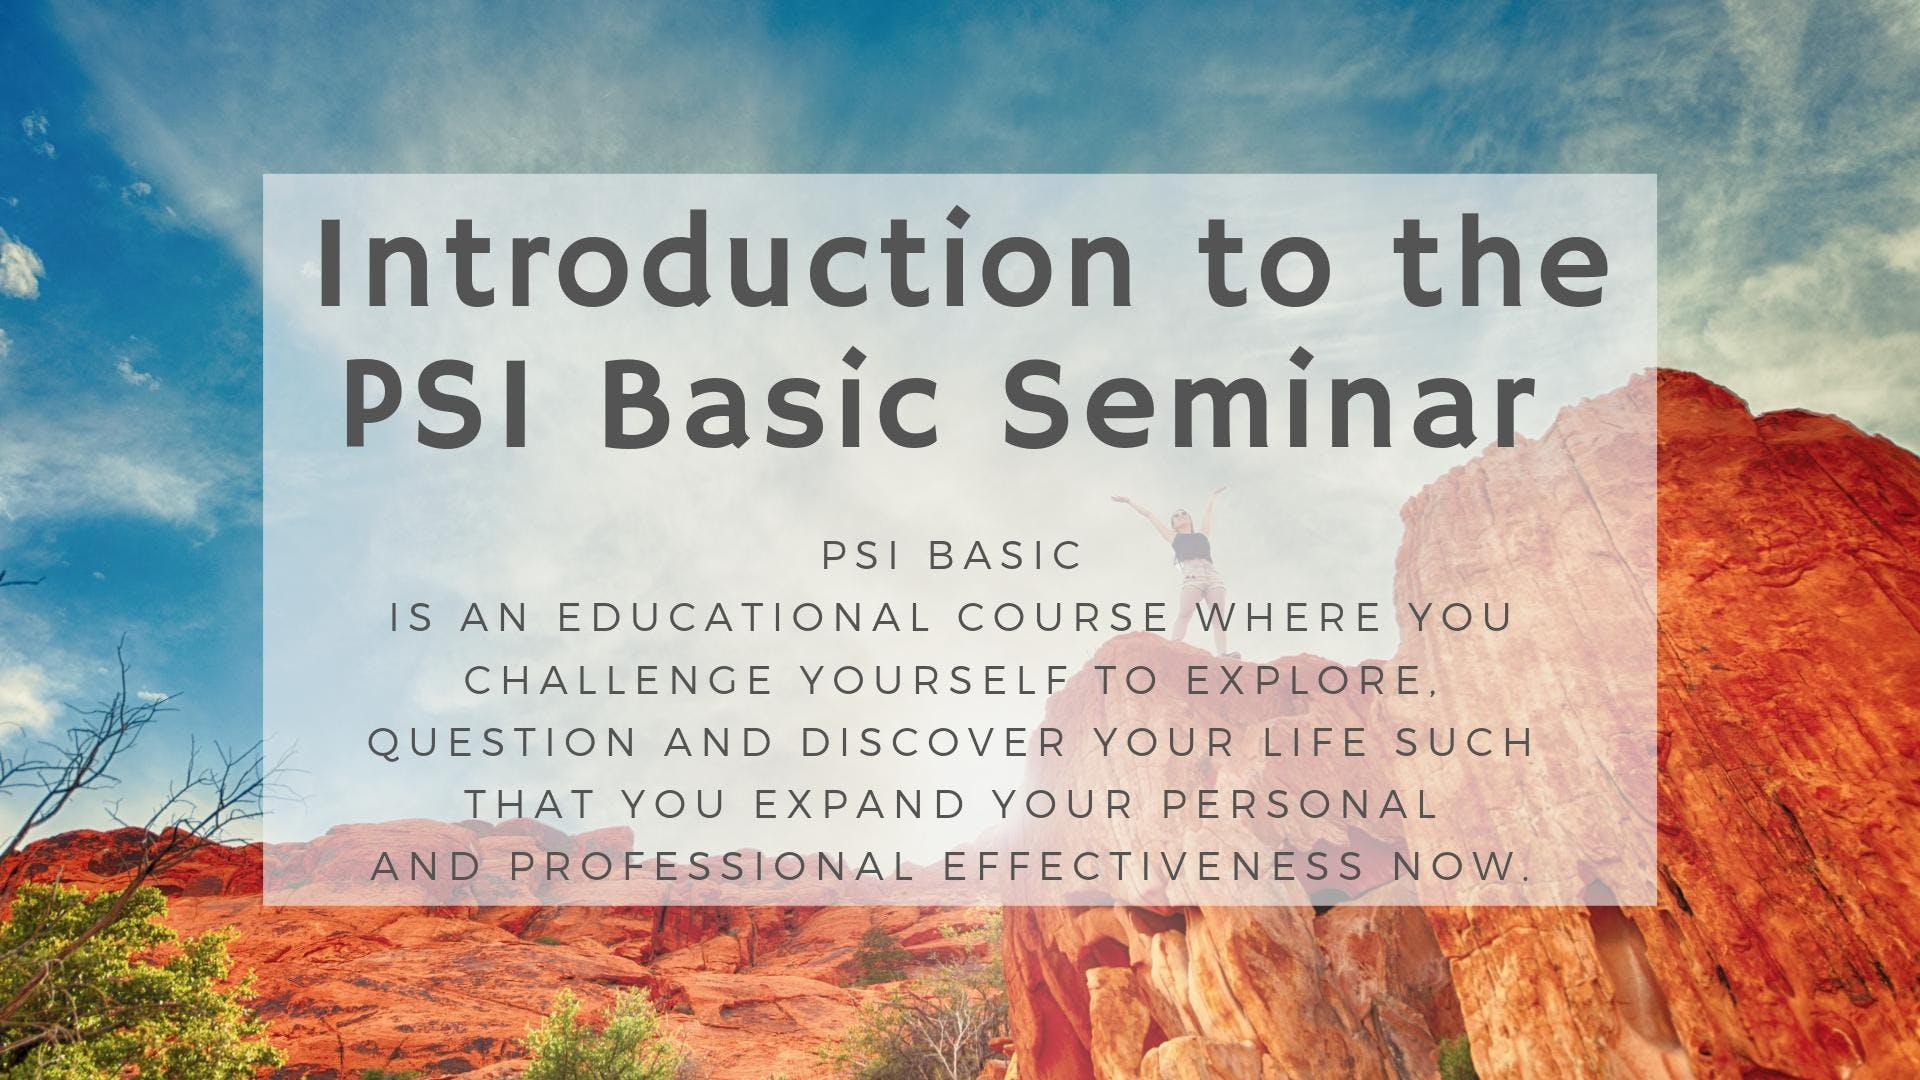 PSI Basic Seminar Introduction